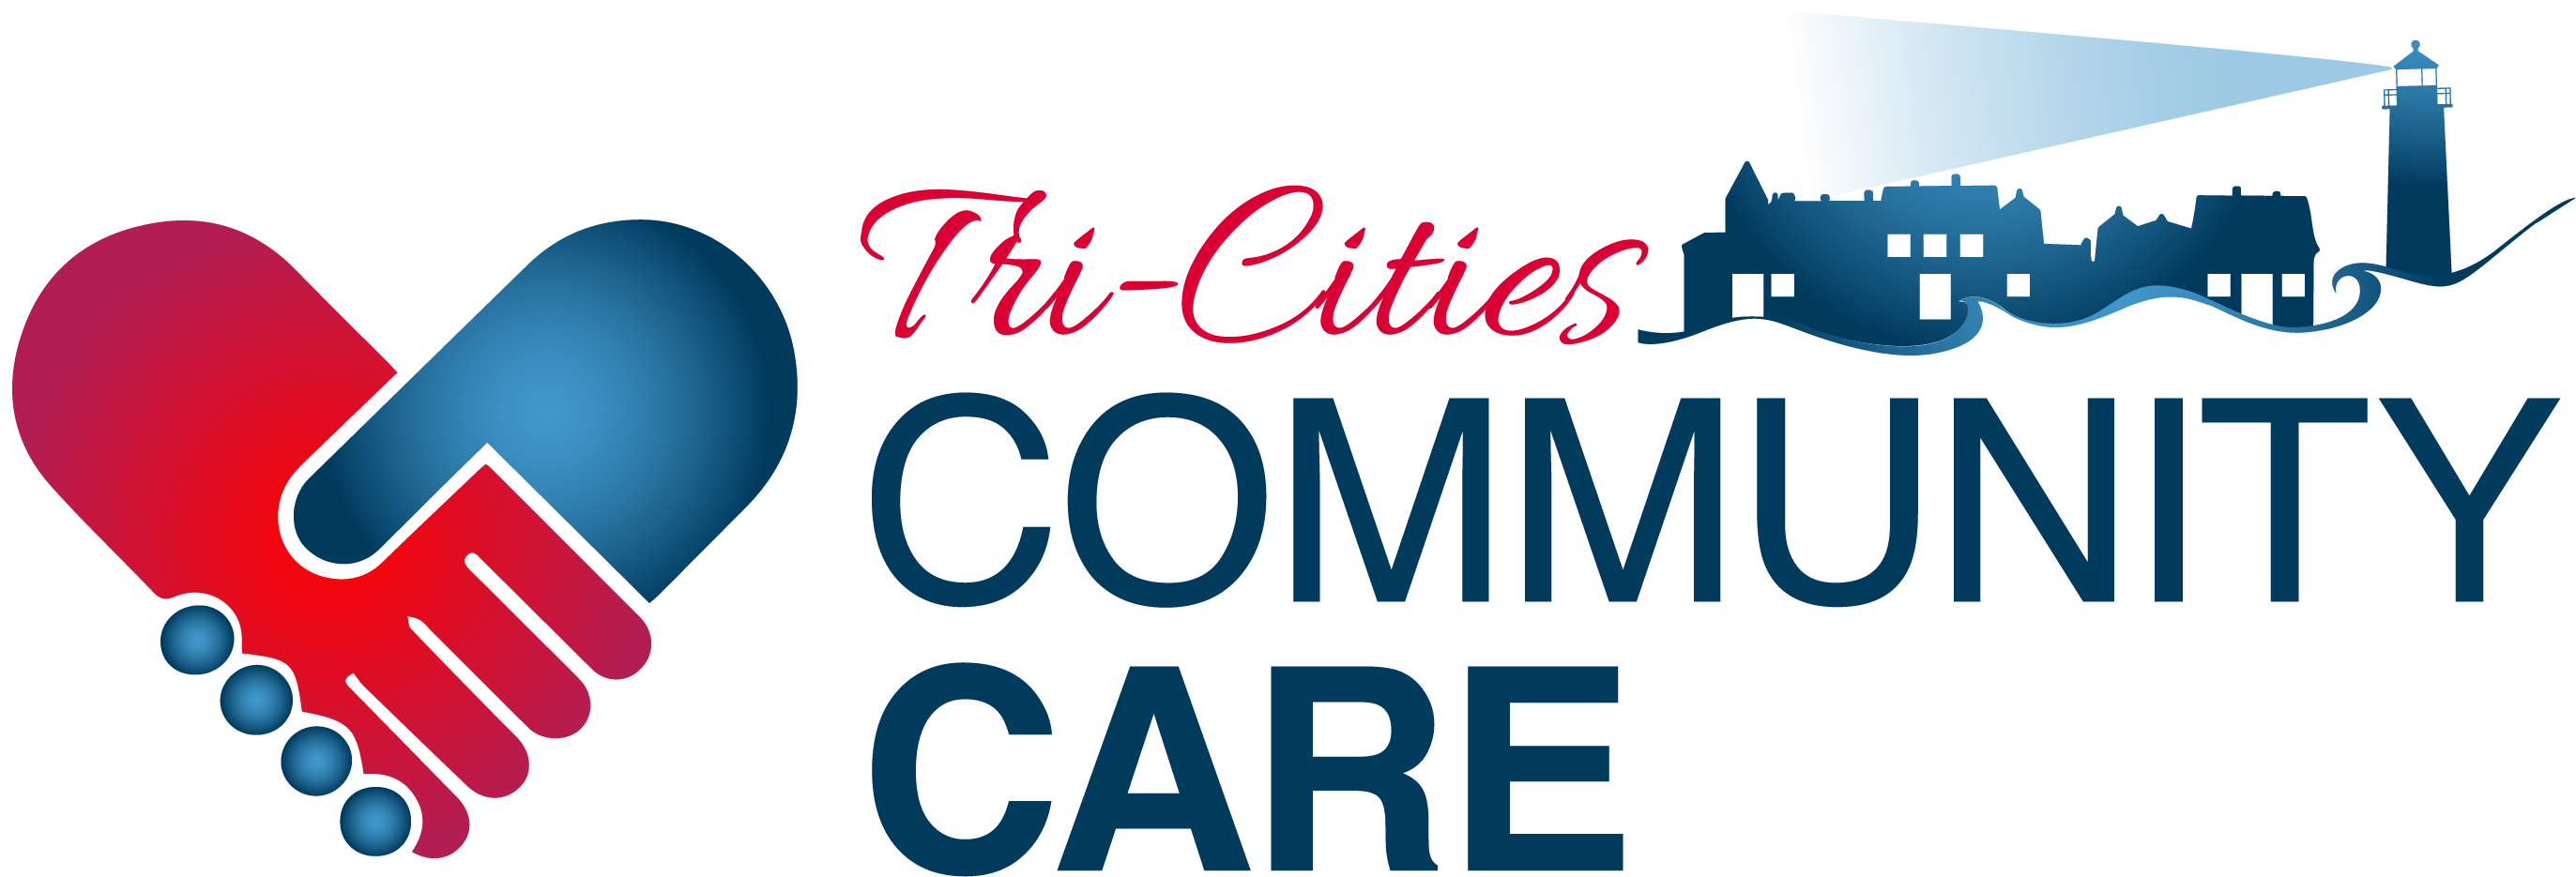 Community Care For Teens